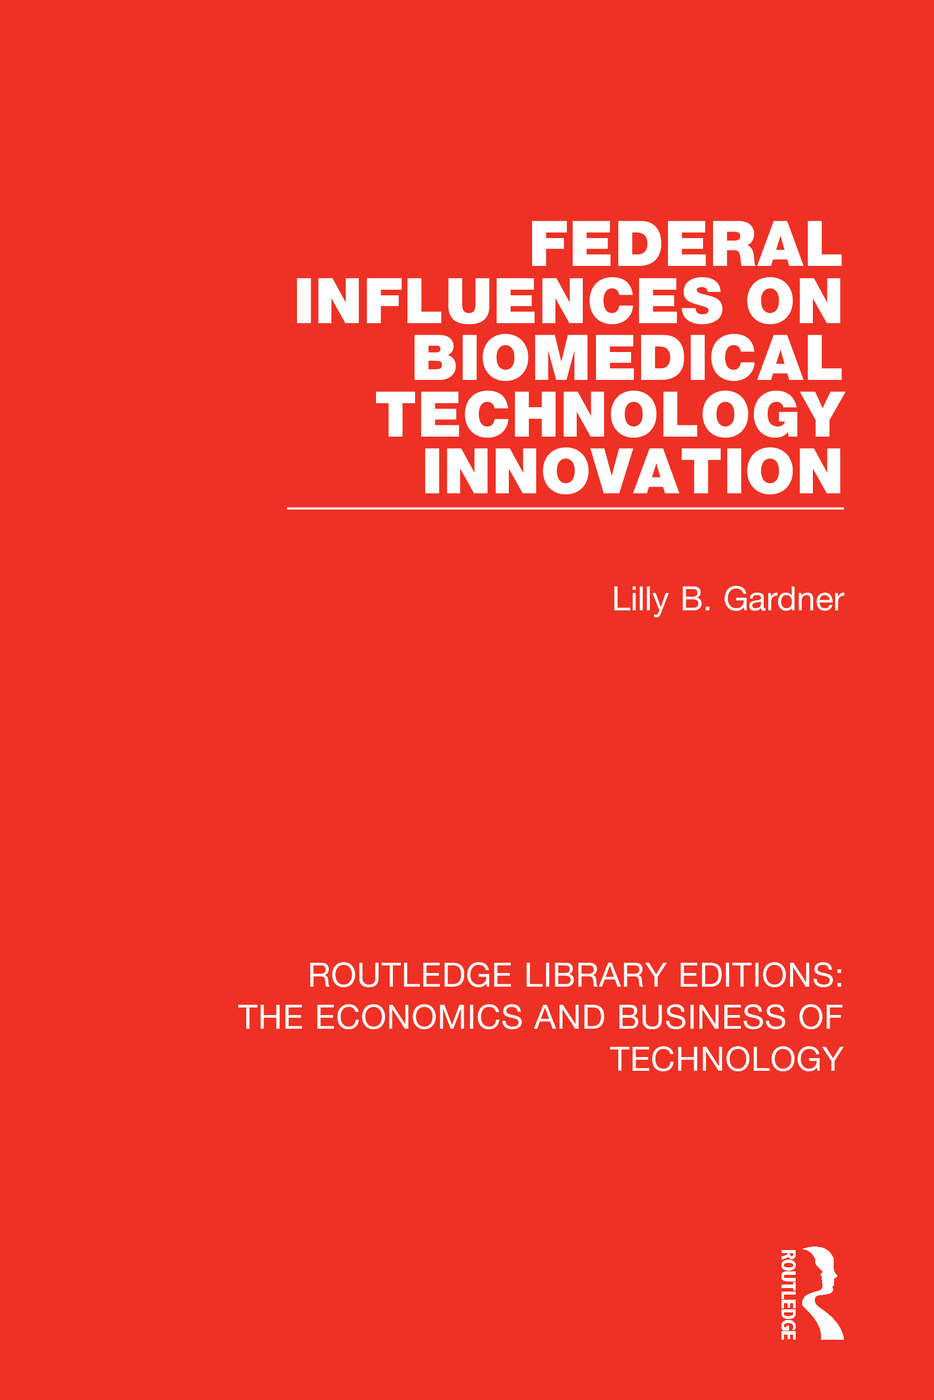 Federal Influences on Biomedical Technology Innovation book cover